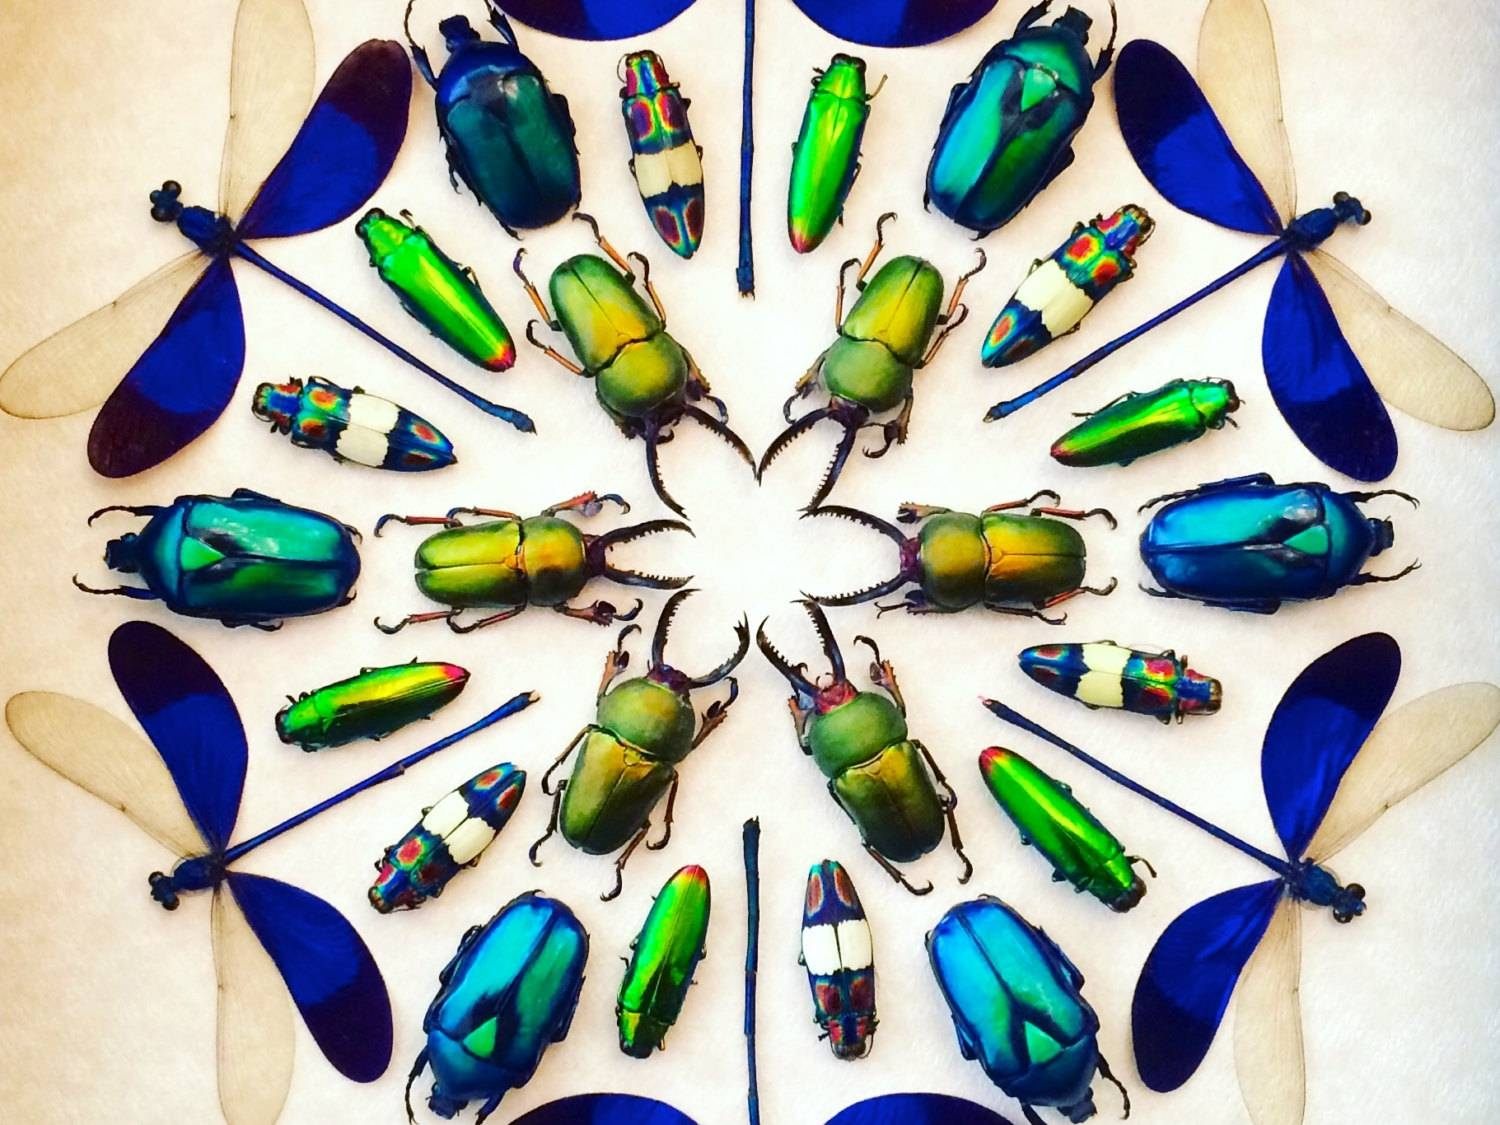 Framed Insect Display Kaleidoscope Real Bugs Framed Beetle Art Intended For Best And Newest Insect Wall Art (View 4 of 30)